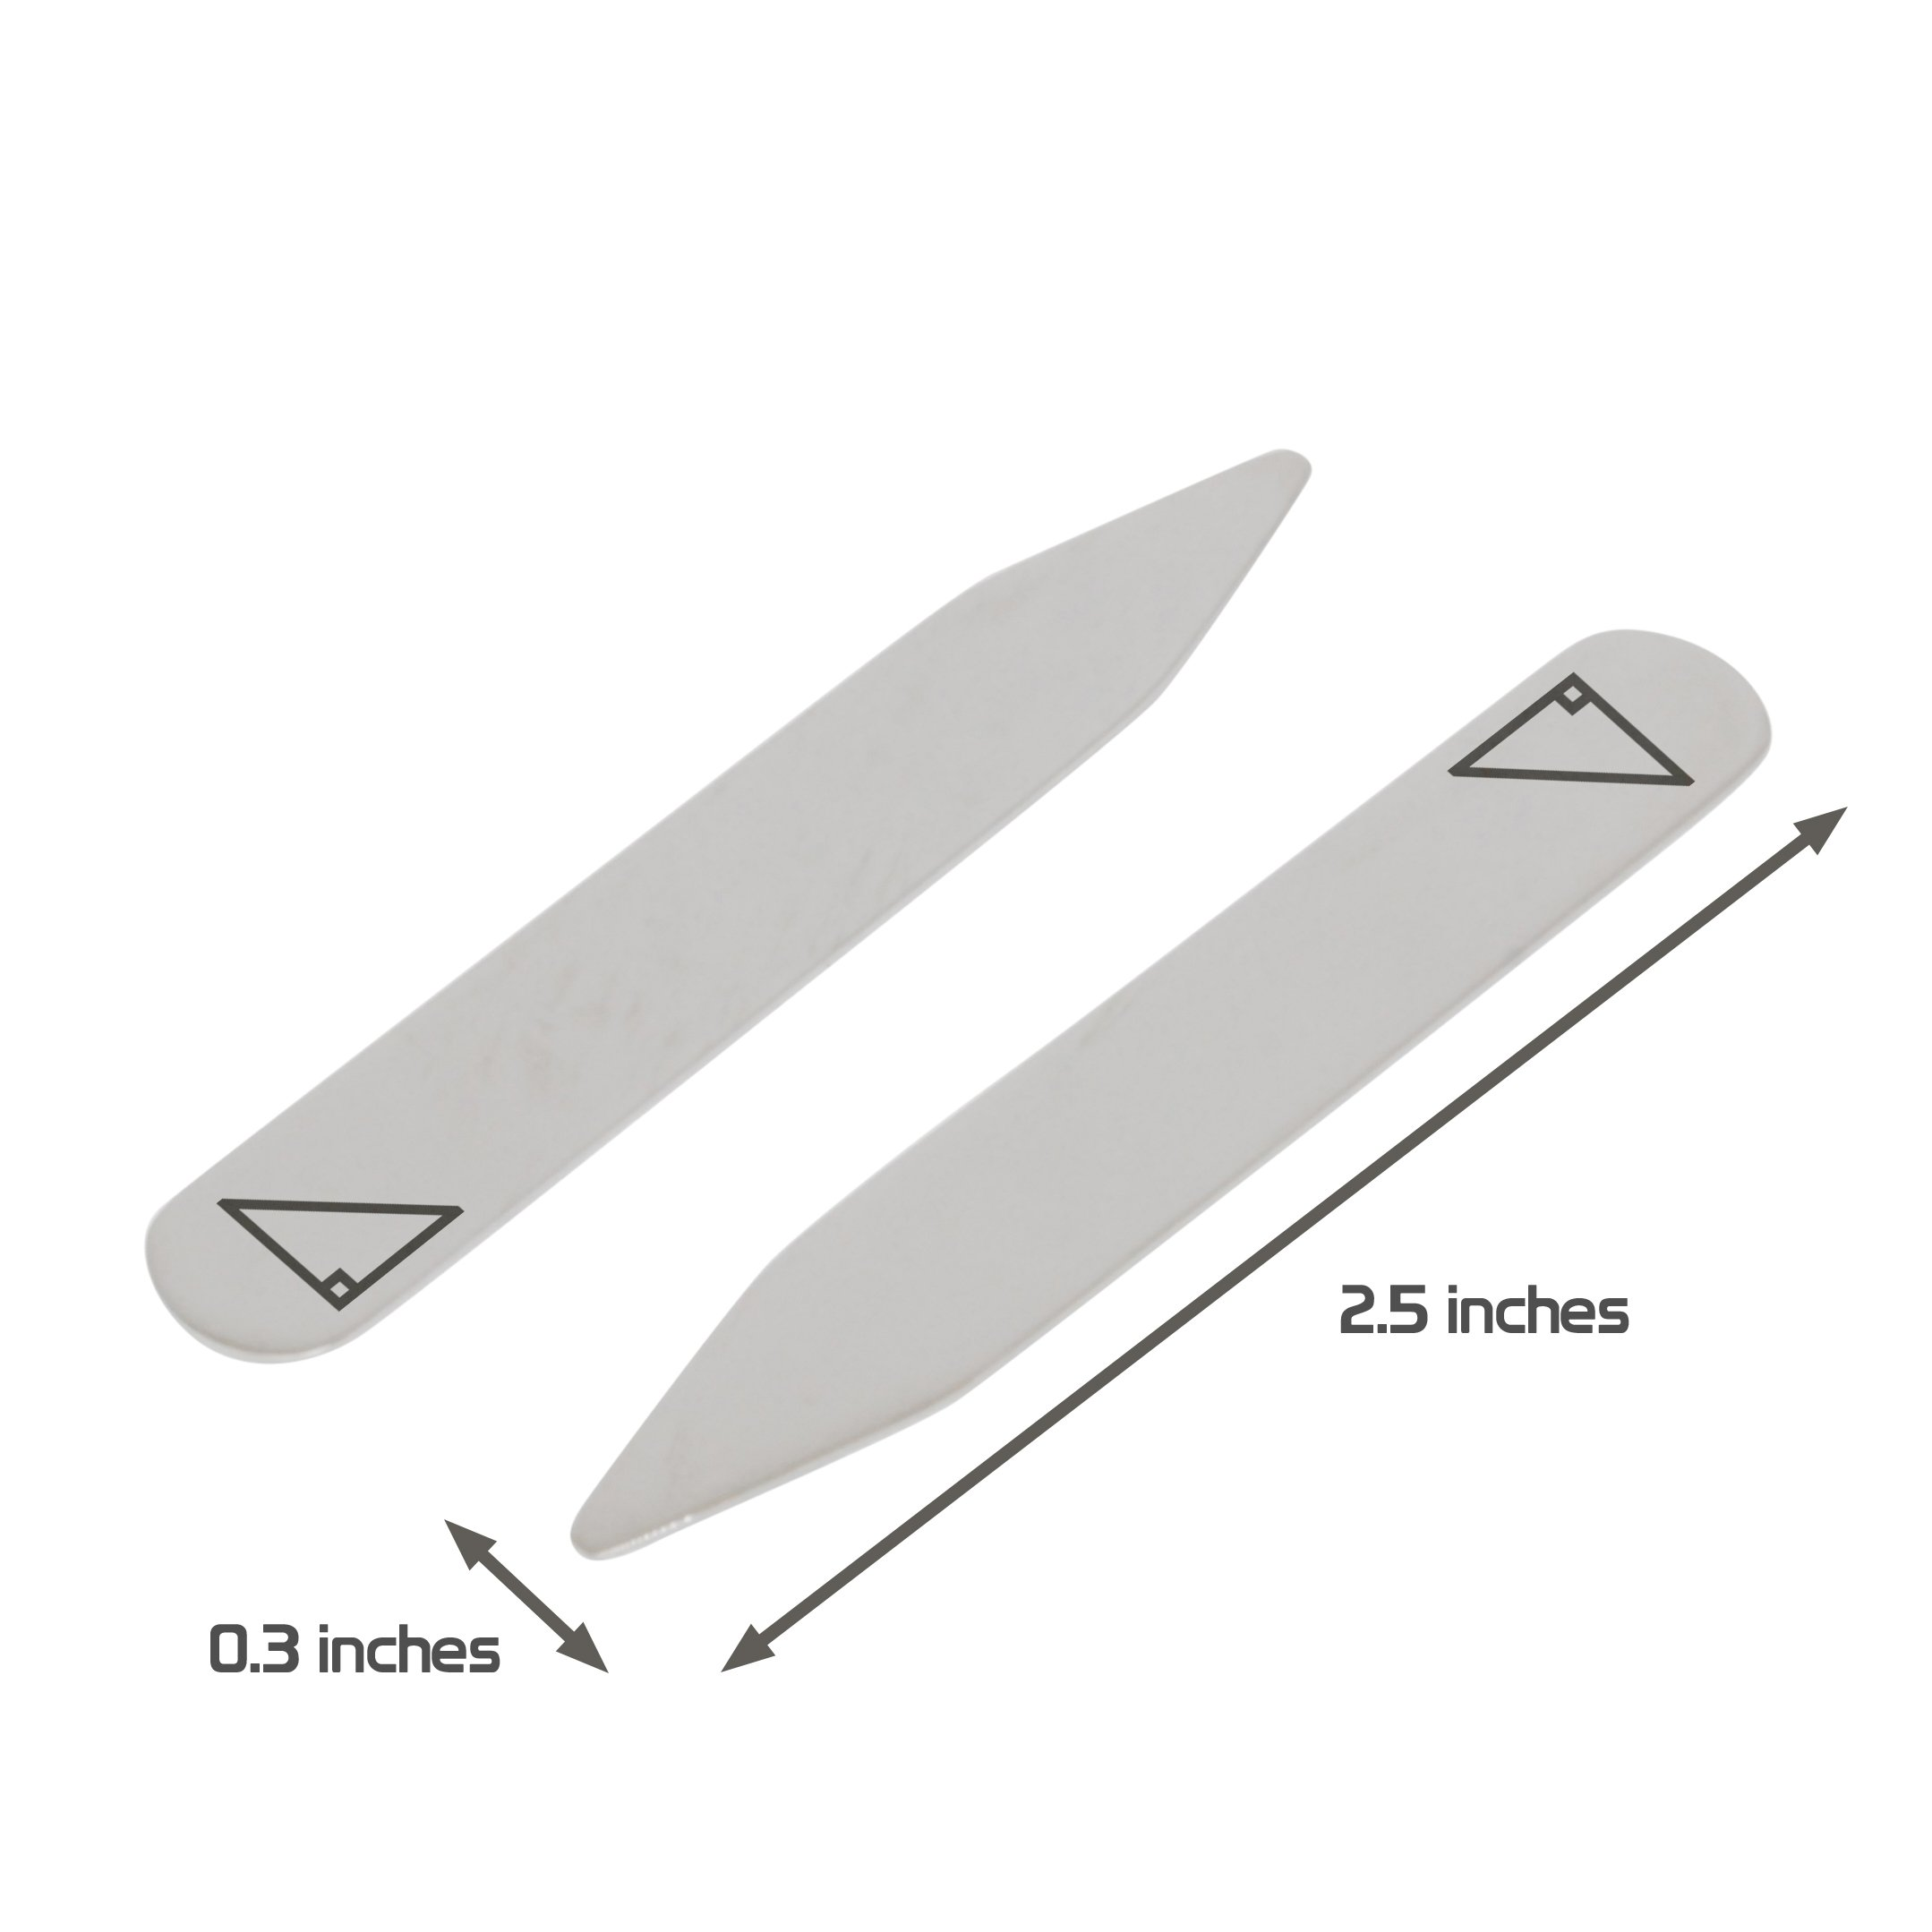 MODERN GOODS SHOP Stainless Steel Collar Stays With Laser Engraved Right Triangle Design - 2.5 Inch Metal Collar Stiffeners - Made In USA by Modern Accessories Co (Image #3)